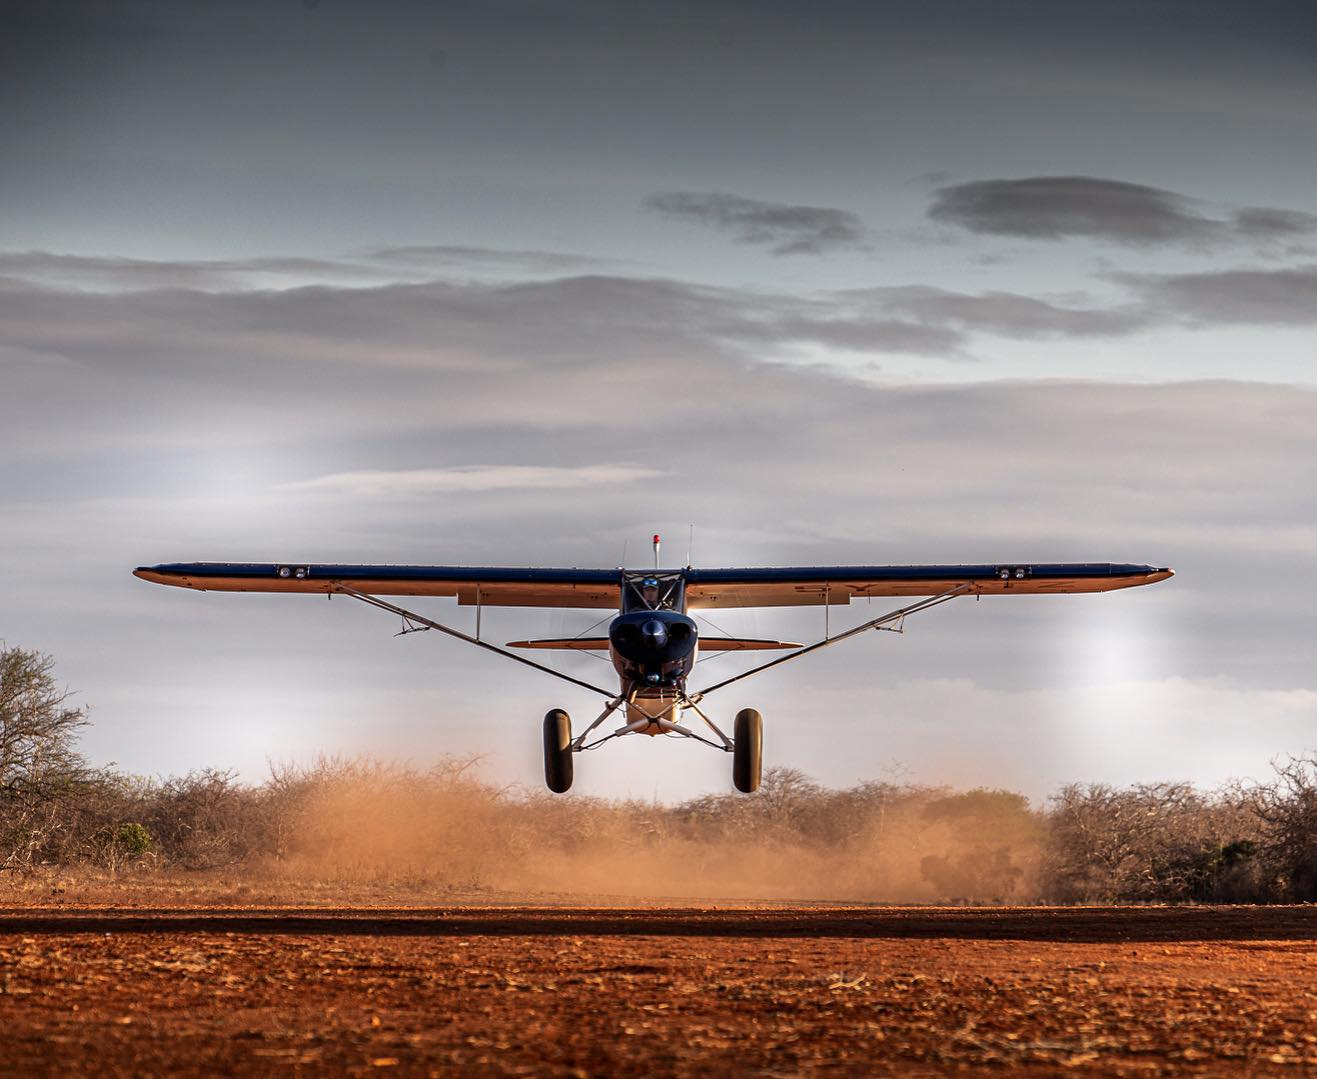 Tsavo Trust Aerial Fleet: All You Need To Know About Our Recon Planes